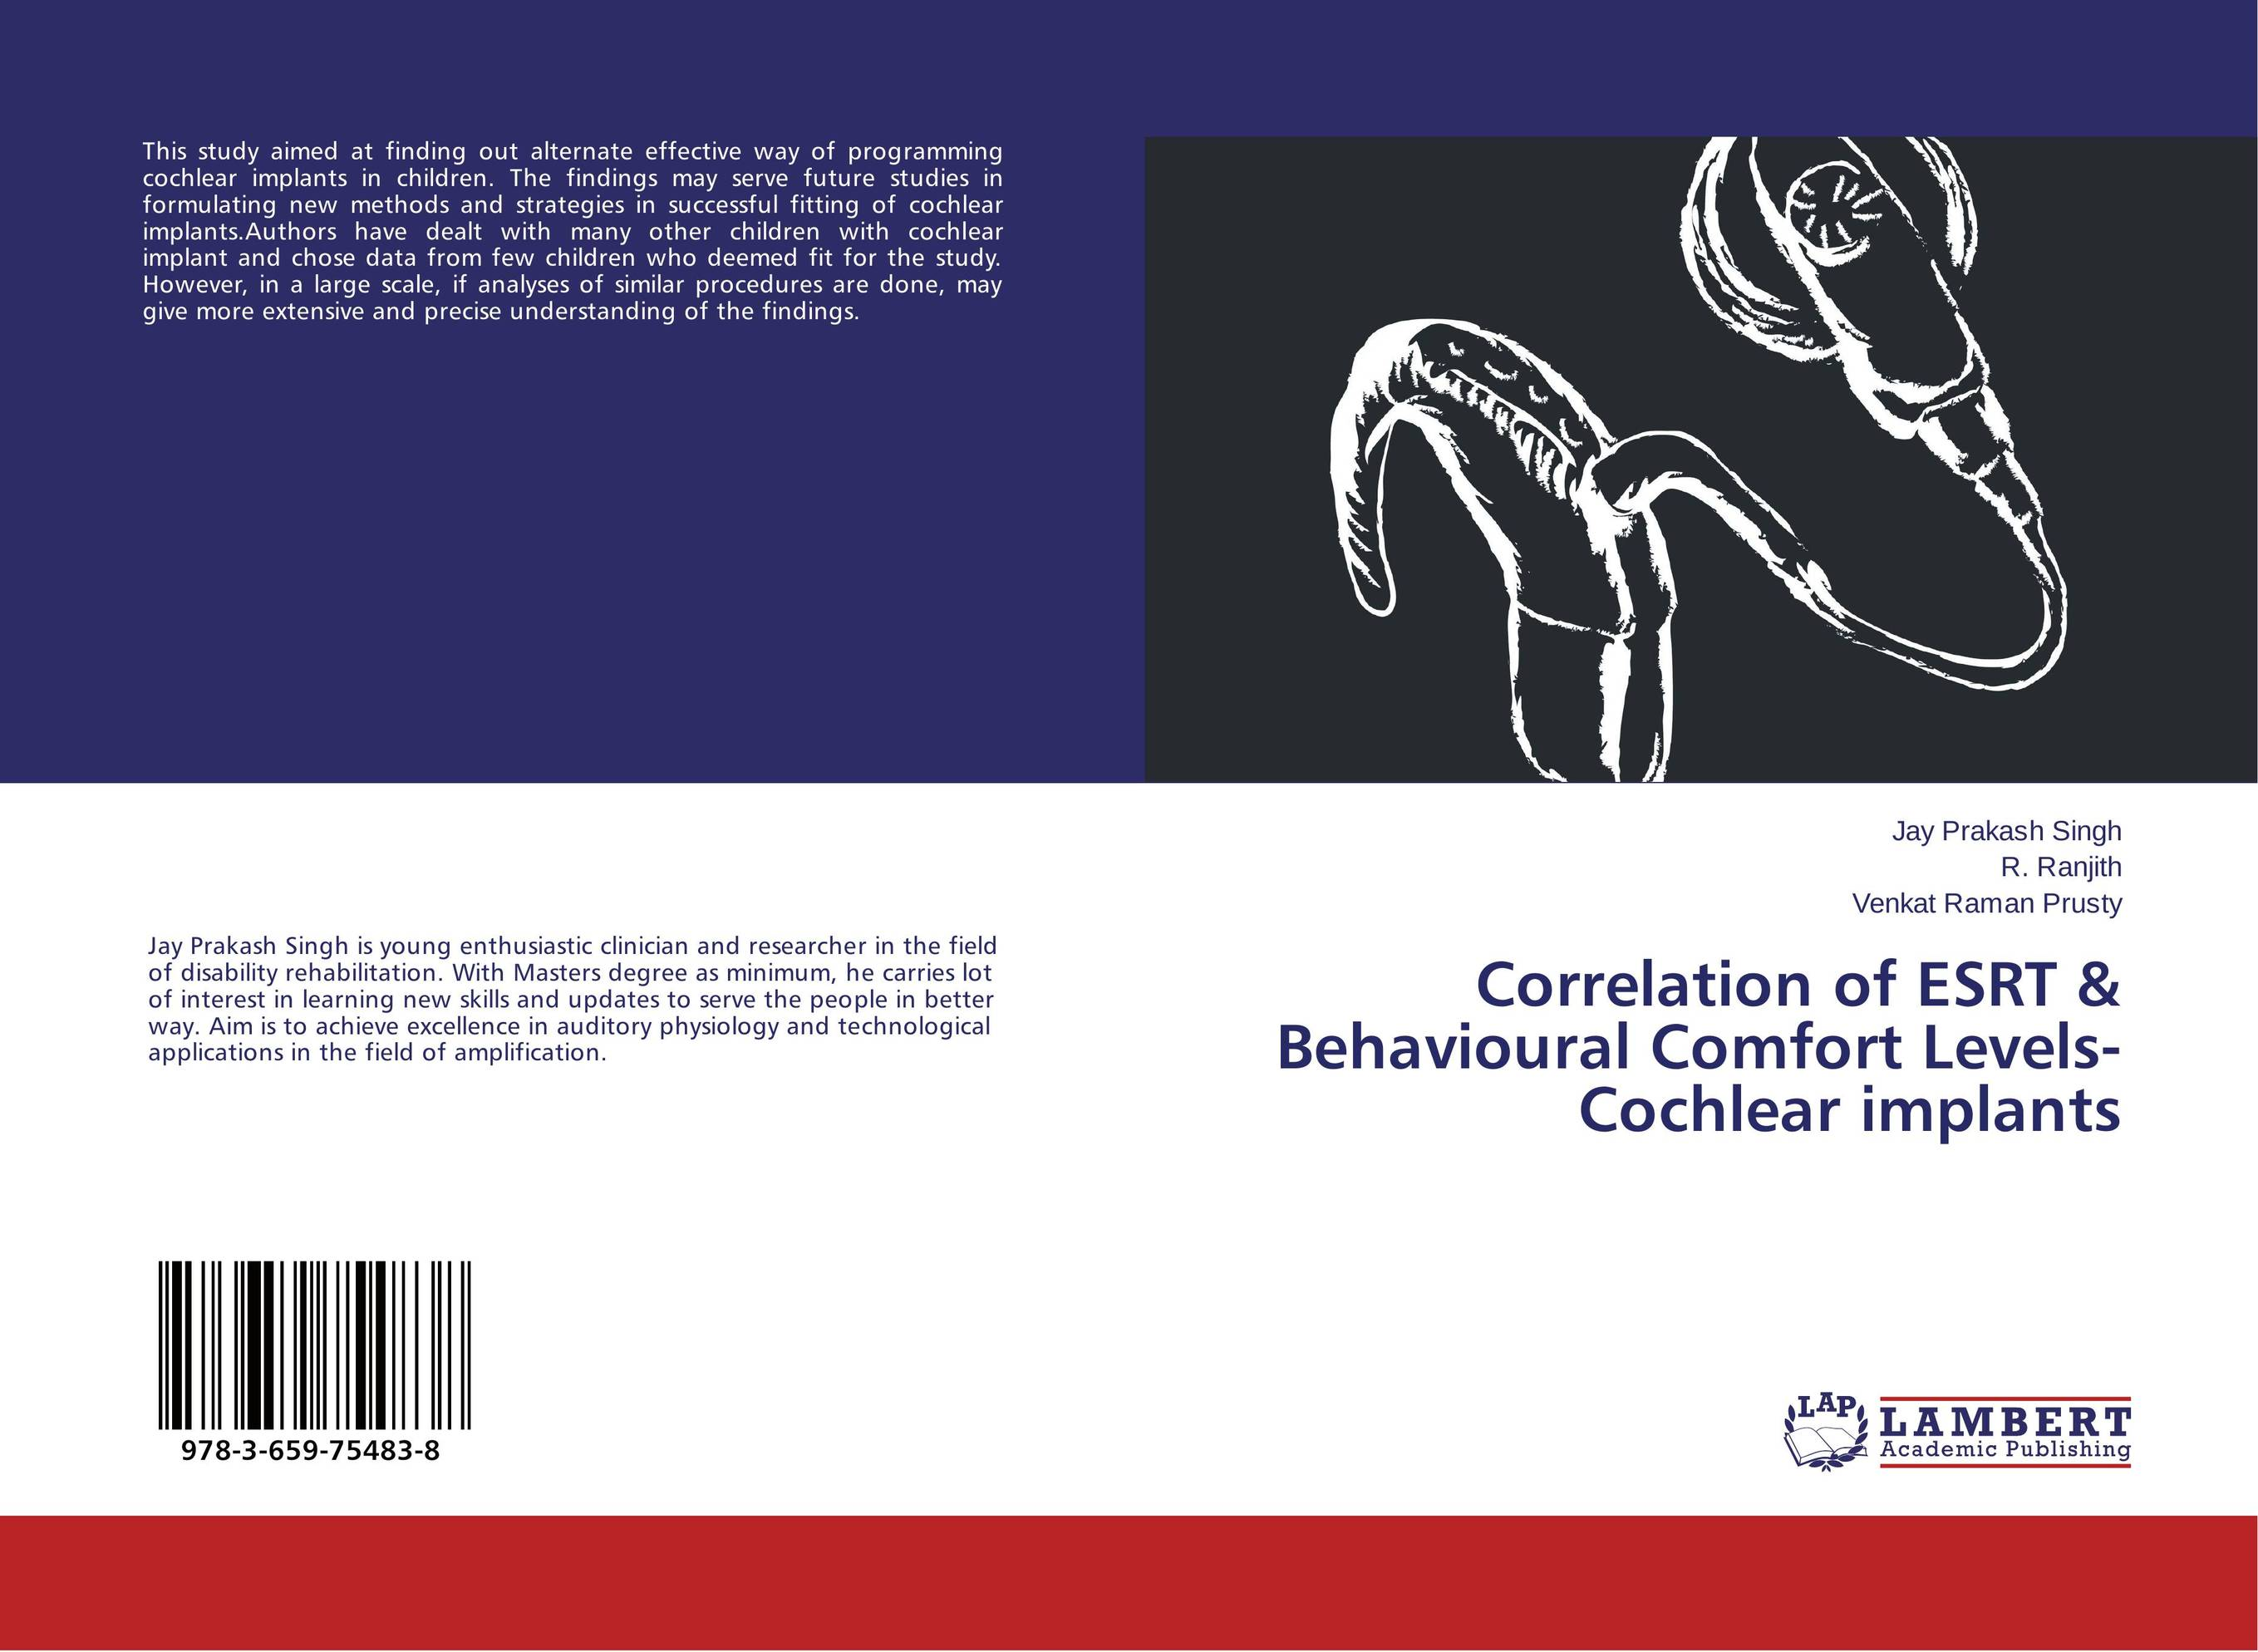 Correlation of ESRT & Behavioural Comfort Levels- Cochlear implants administrative corruption in bangladesh a behavioural study